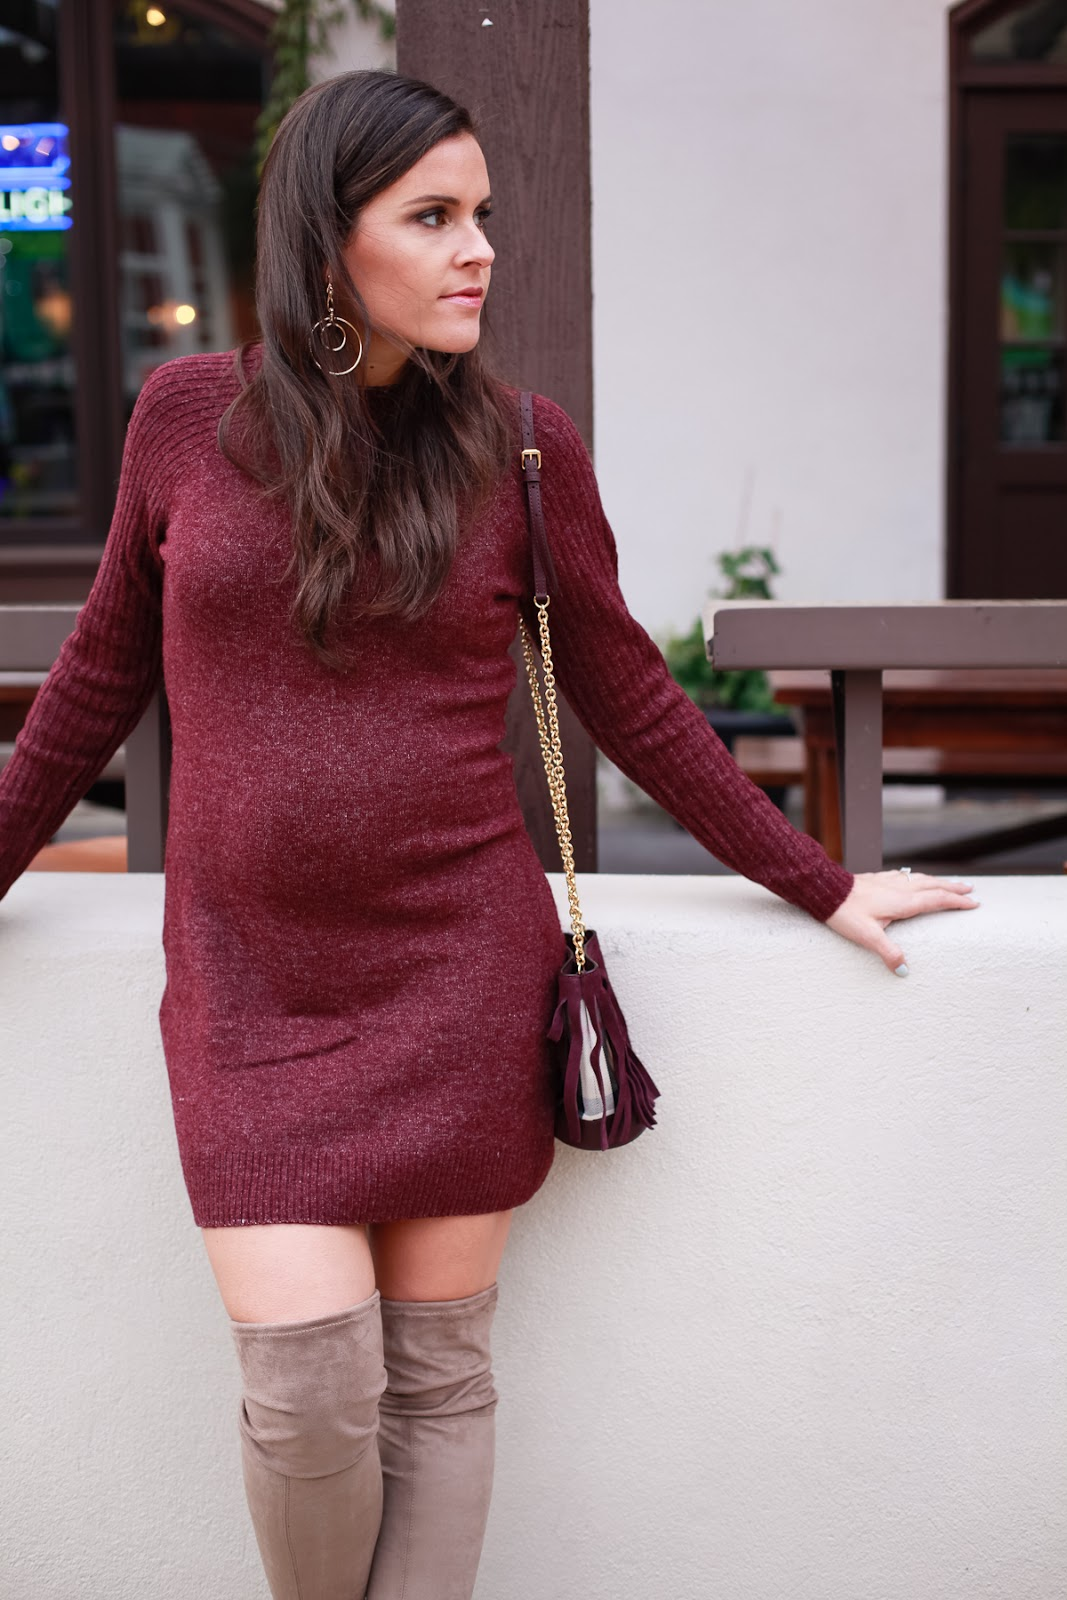 Balancing Thigh High Boots With A Sweater Dress